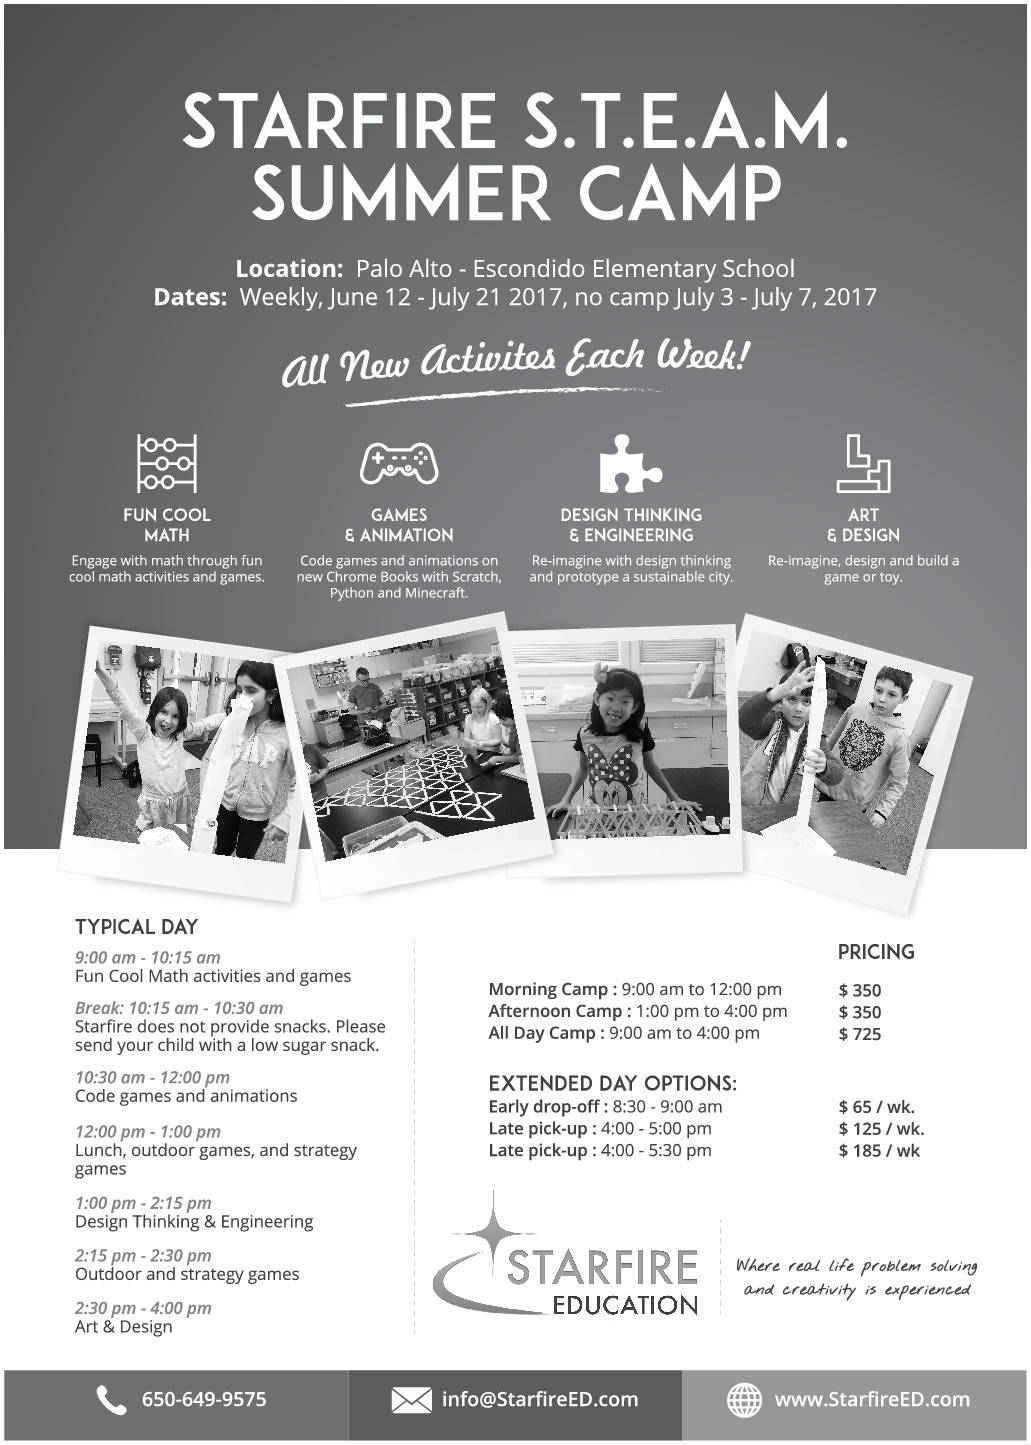 Flyer for fun S.T.E.A.M. (Science, Technology, Engineering, Art, Mathematics) Summer Camp